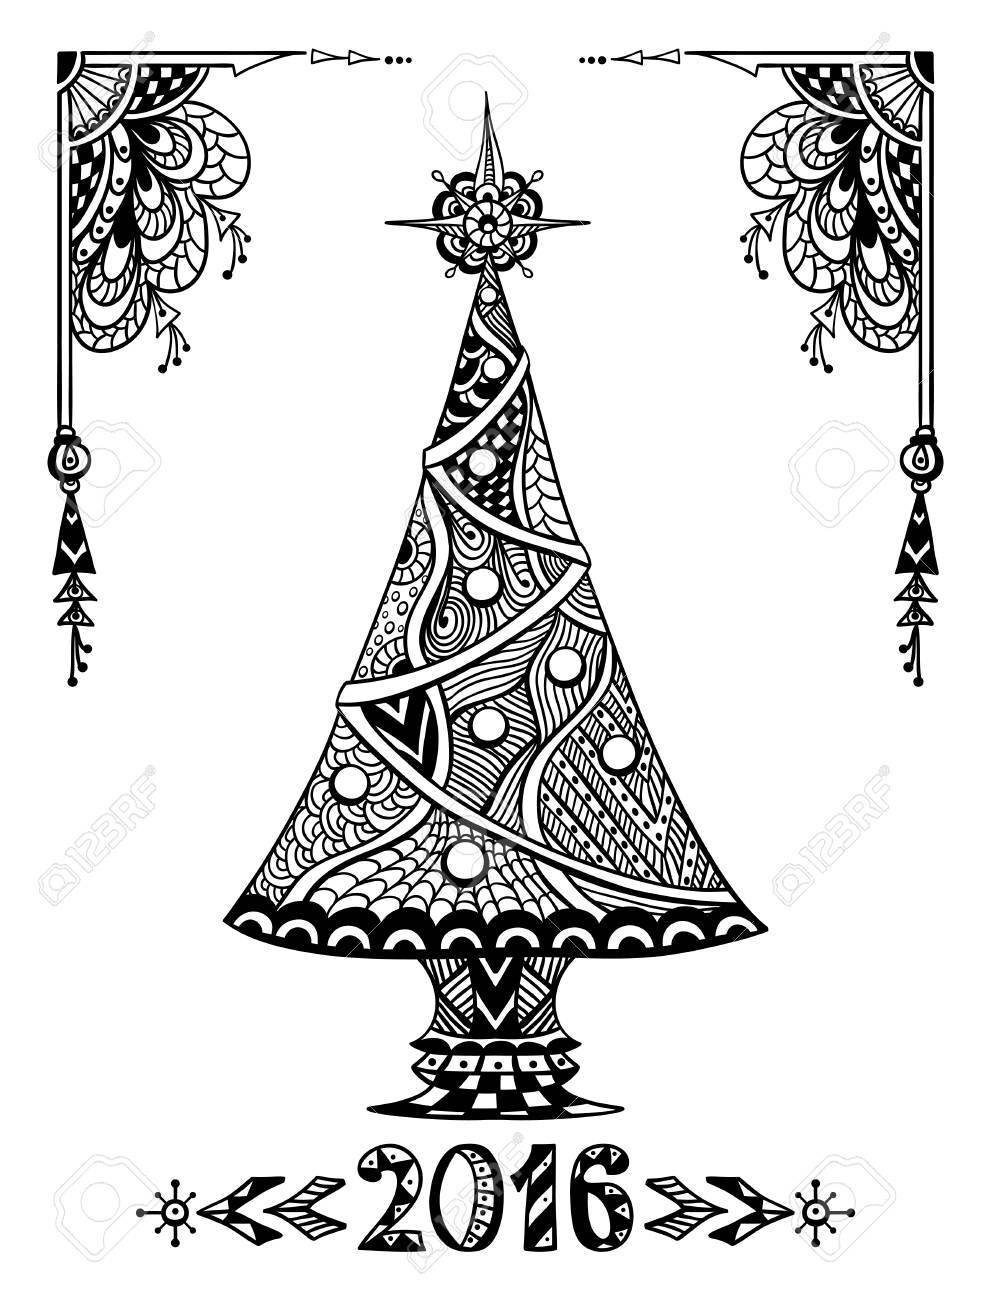 christmas tree in zen doodle style black on white coloring page for coloring book or